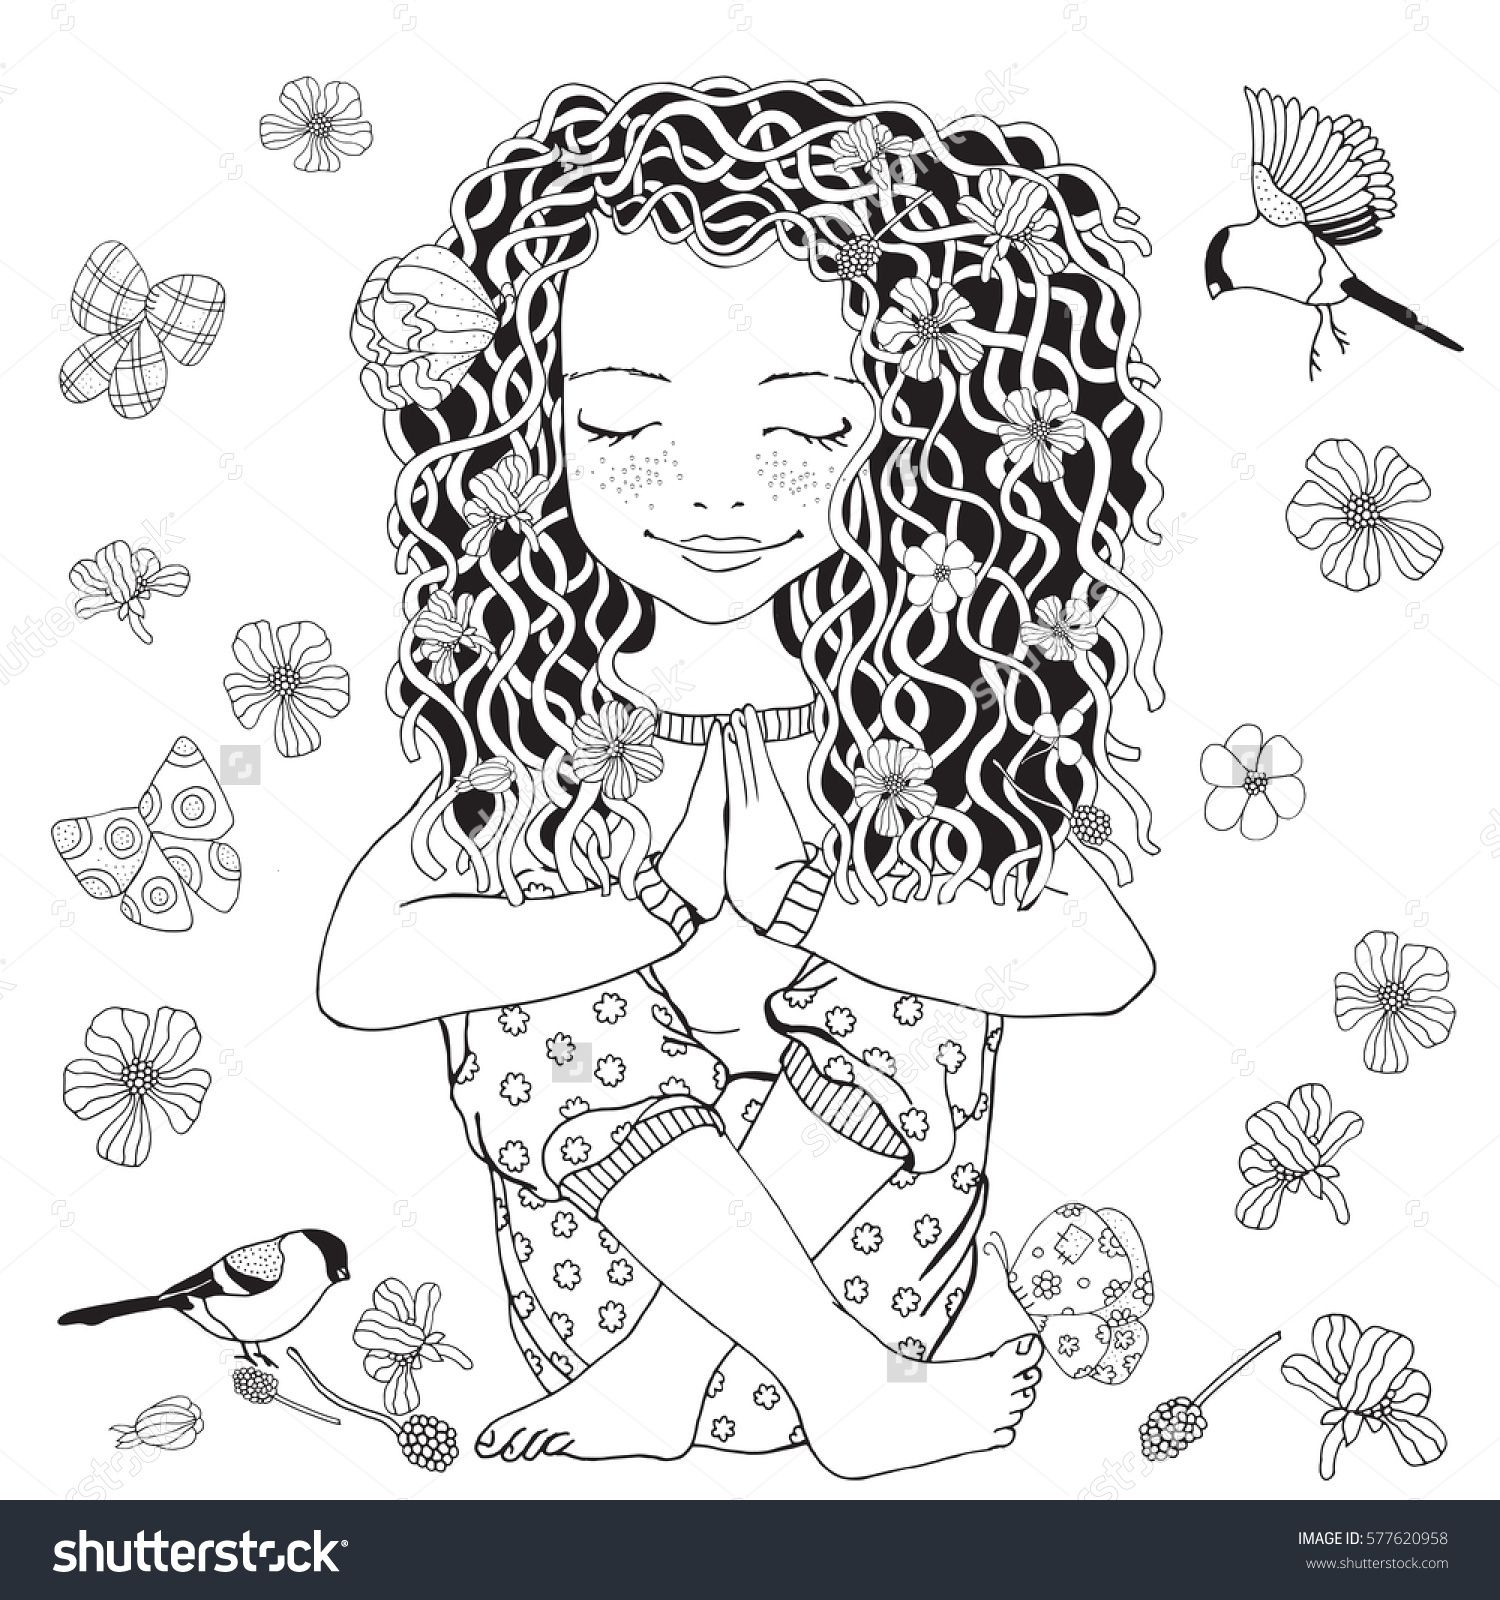 Coloring pages yoga - Cute Girl In Yoga Pose Adult Coloring Page Black And White Vector Illustration